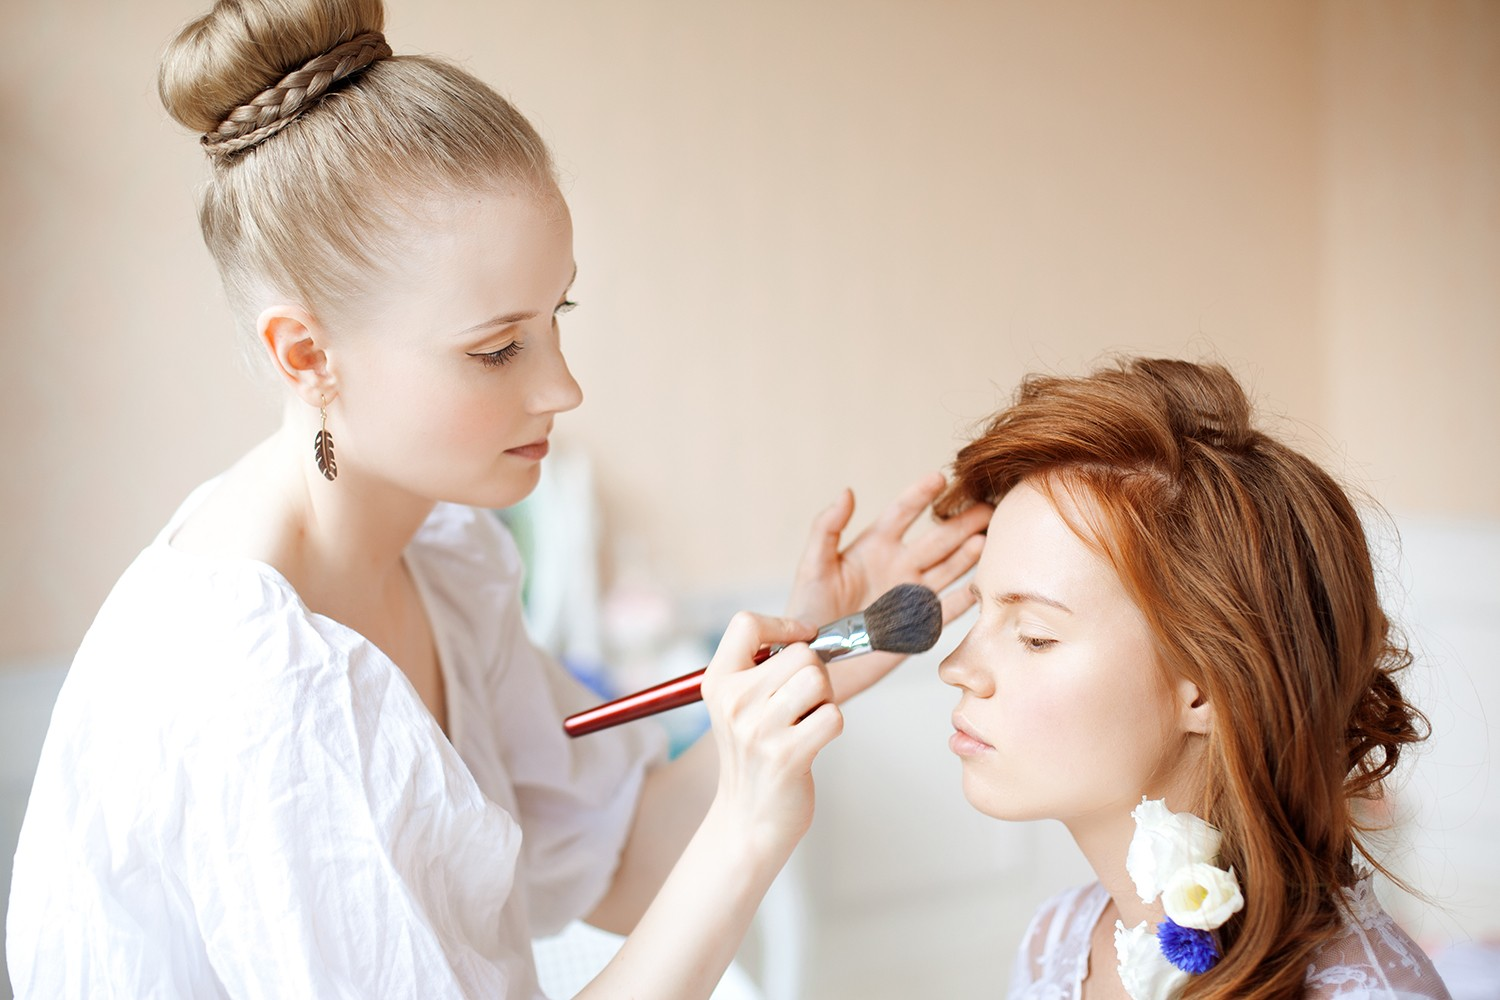 Bridal guide - beauty, hair, skin and makeup timeline for the wedding - Wedding Beauty Plan and Health: How to Prep for Your Wedding featured by popular Los Angeles cruely free beauty blogger, My Beauty Bunny